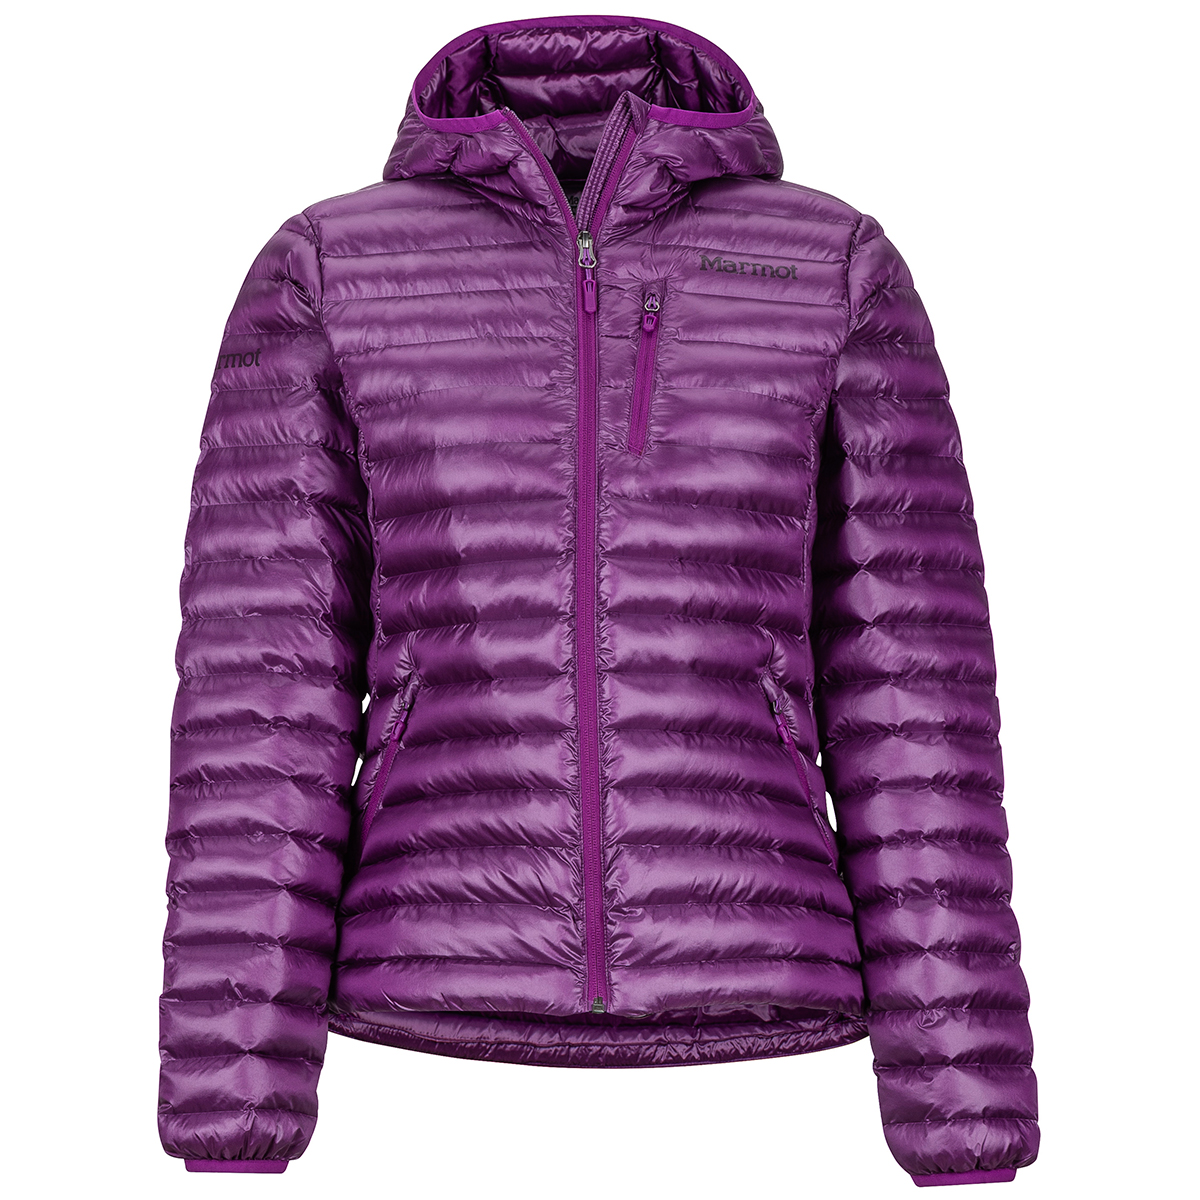 Marmot Women's Avant Featherless Hoodie - Purple, M